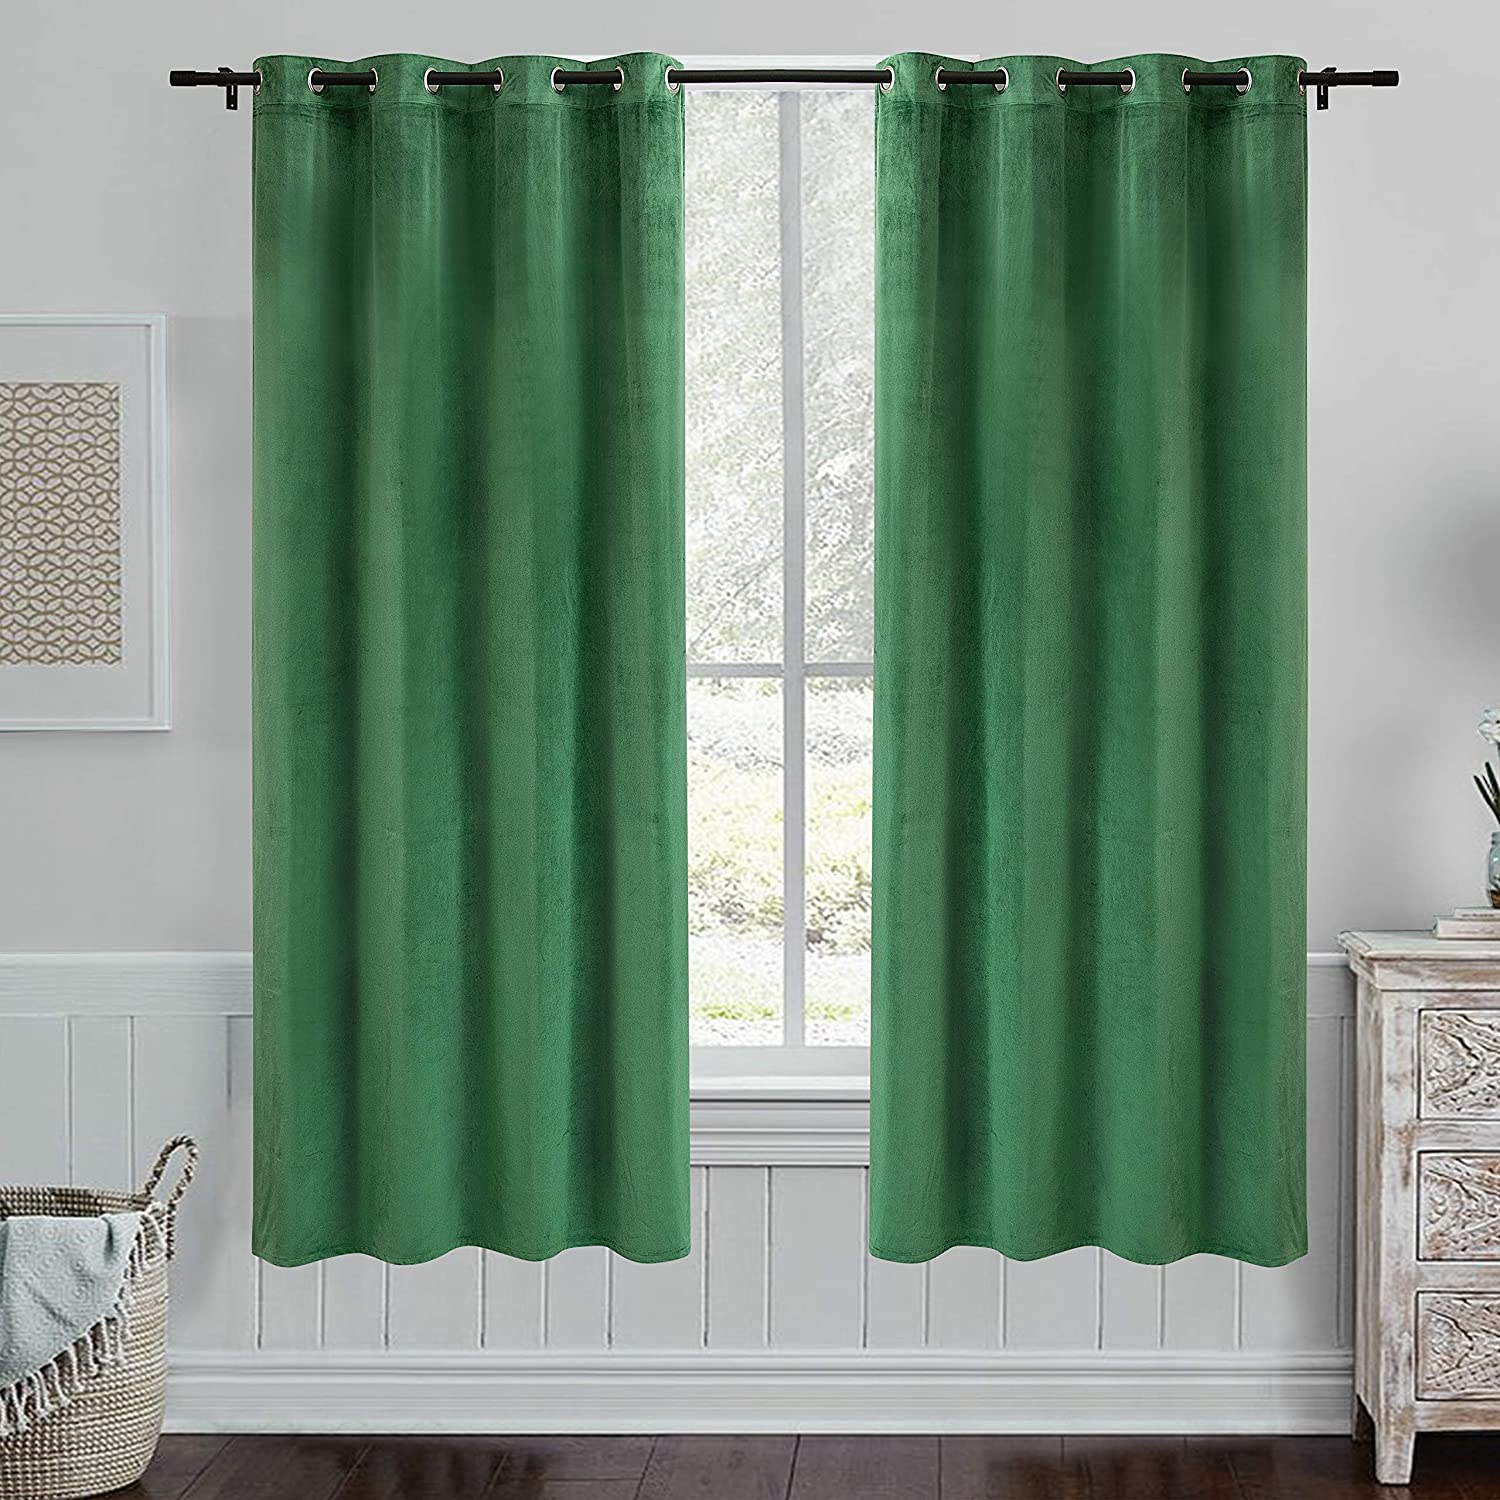 PY Home & Sports Green Velvet Curtains 84 Inches- Room Darkening Curtains Grommet Blackout Window Treatment for Living Room Solid Draperies(Dark Green, 52